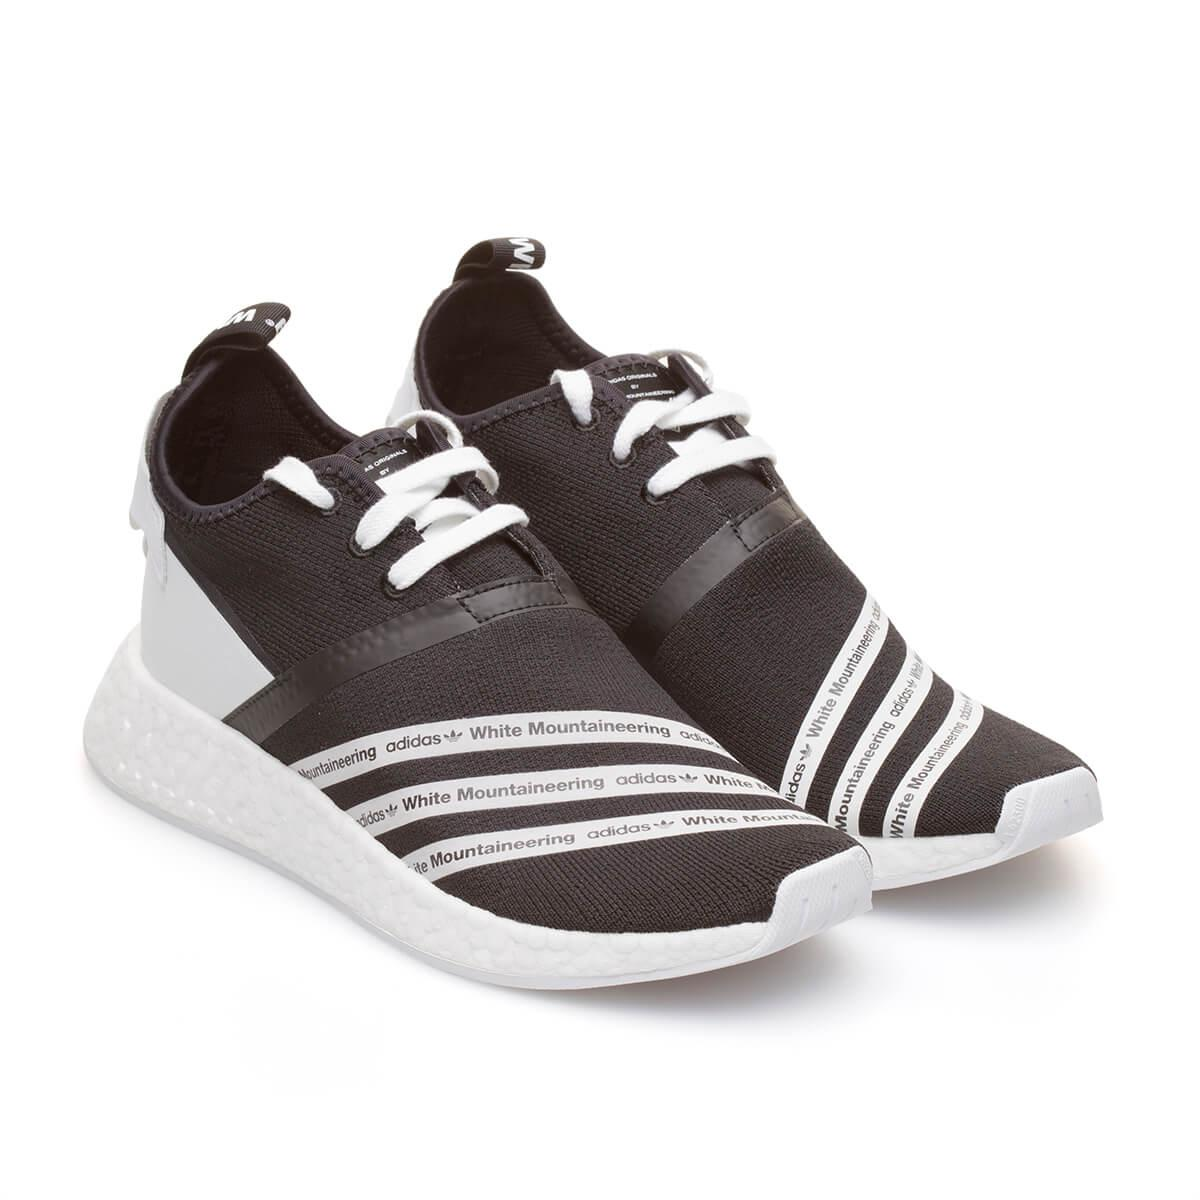 237ad848e Gallery. Men s Athletic Propulsion Labs Techloom Women s Adidas ...